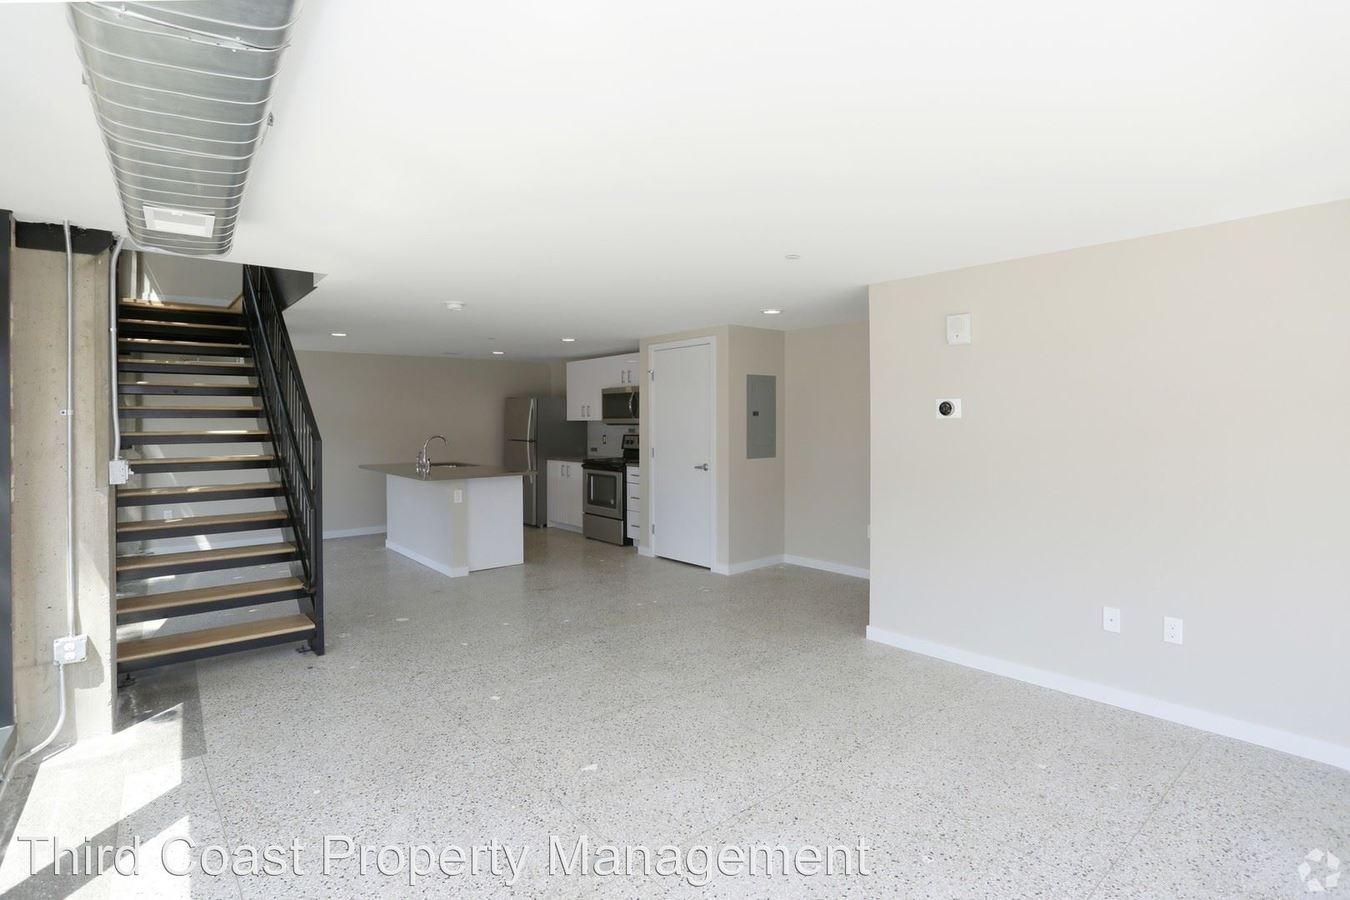 2 Bedrooms 2 Bathrooms Apartment for rent at 25 Jefferson Ave. Se in Grand Rapids, MI